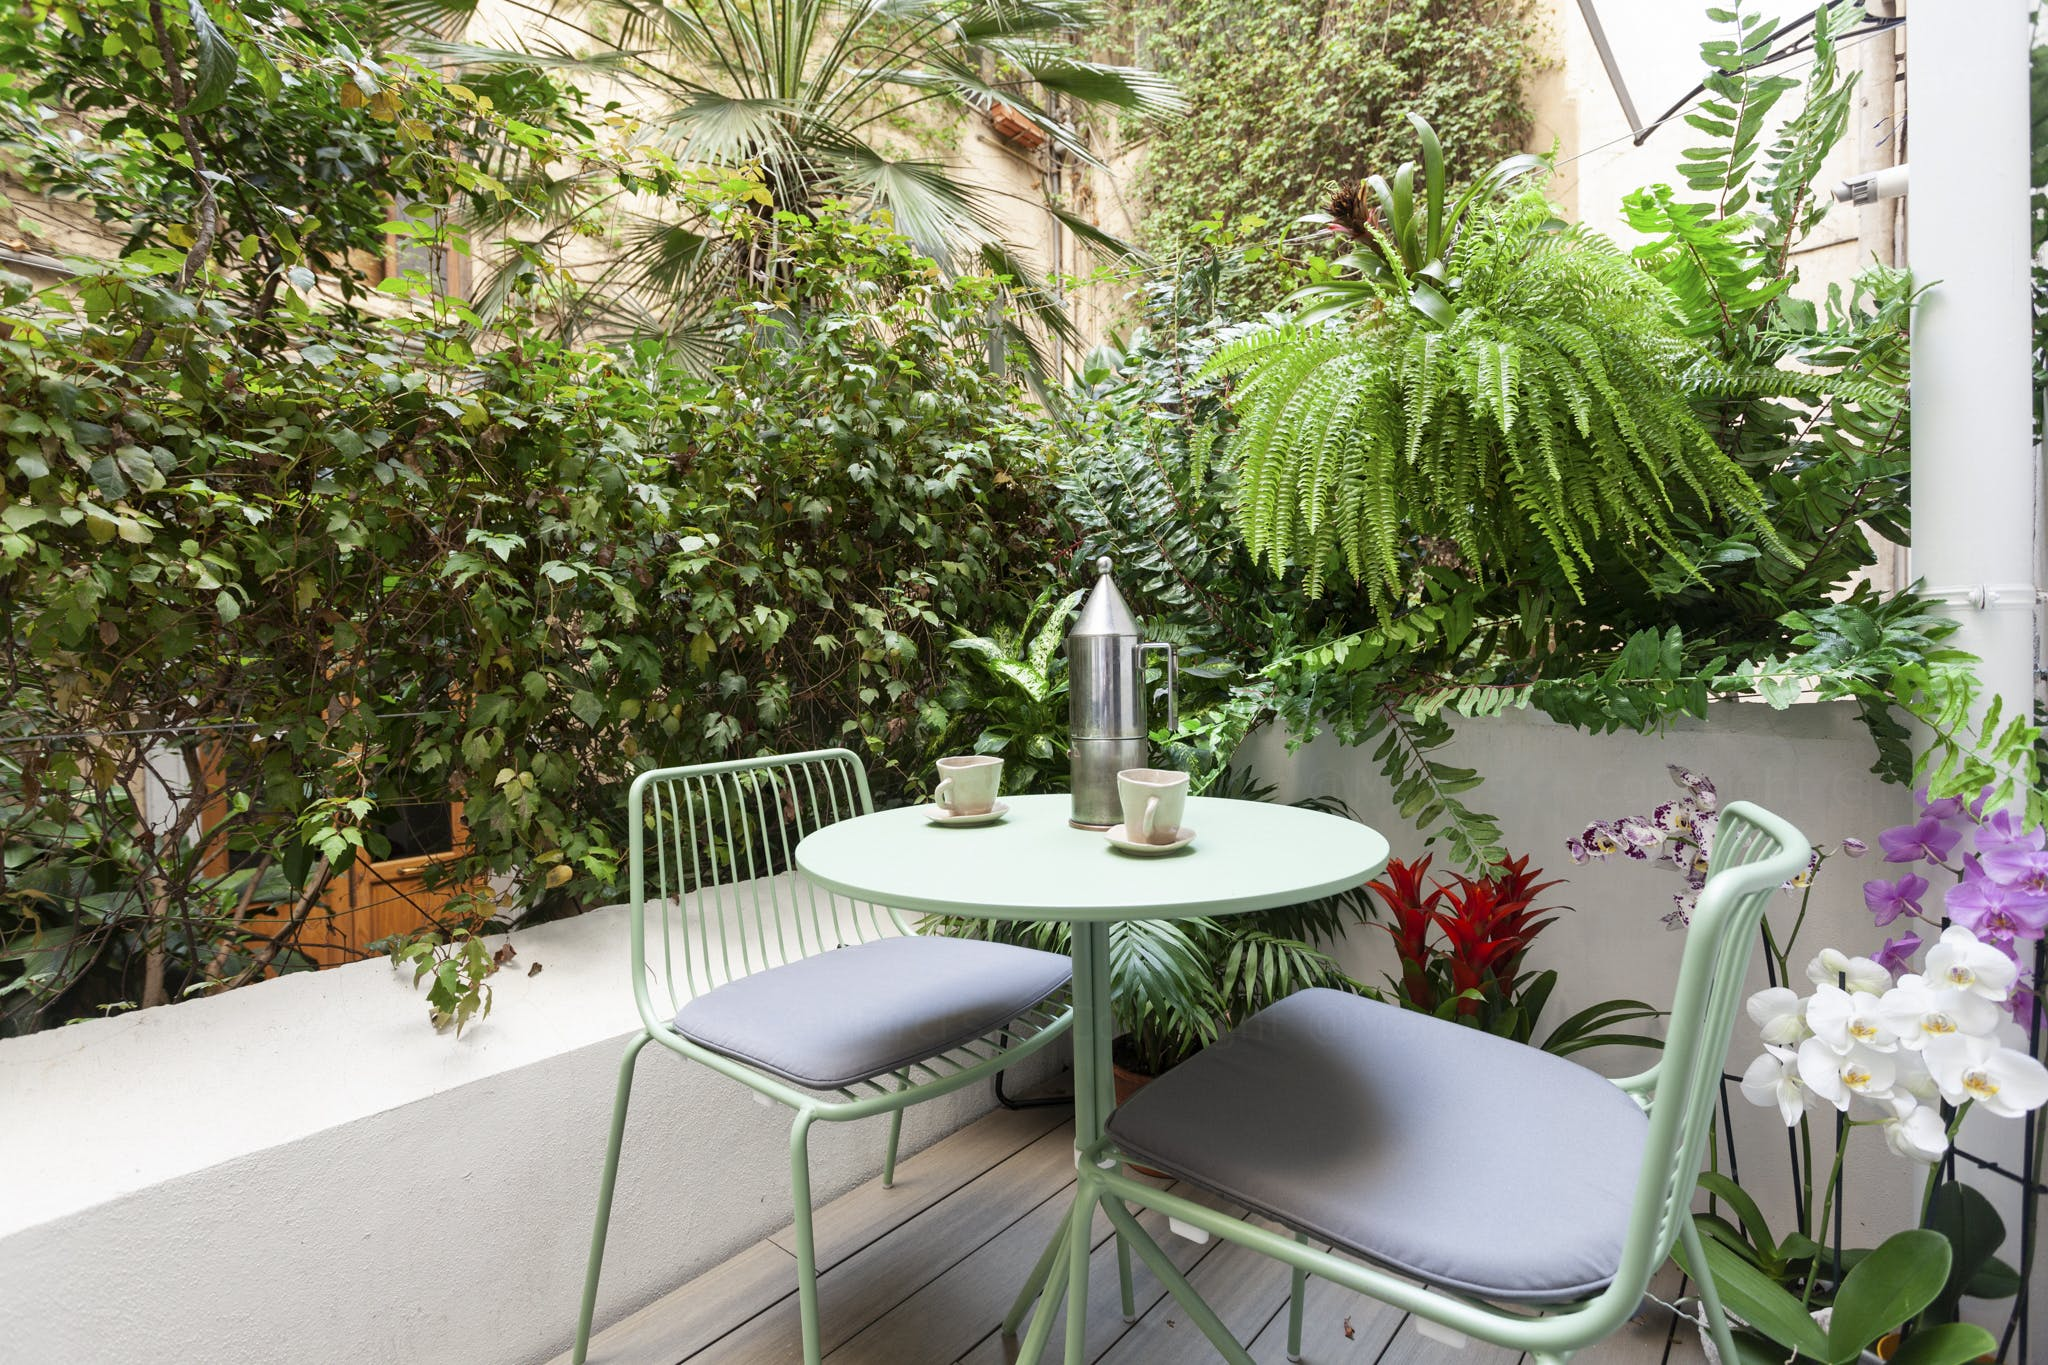 8 Residents | Via Agrigento - Libertà | Vintage Style Townhouse - Incl. Coworking + Private Terrace